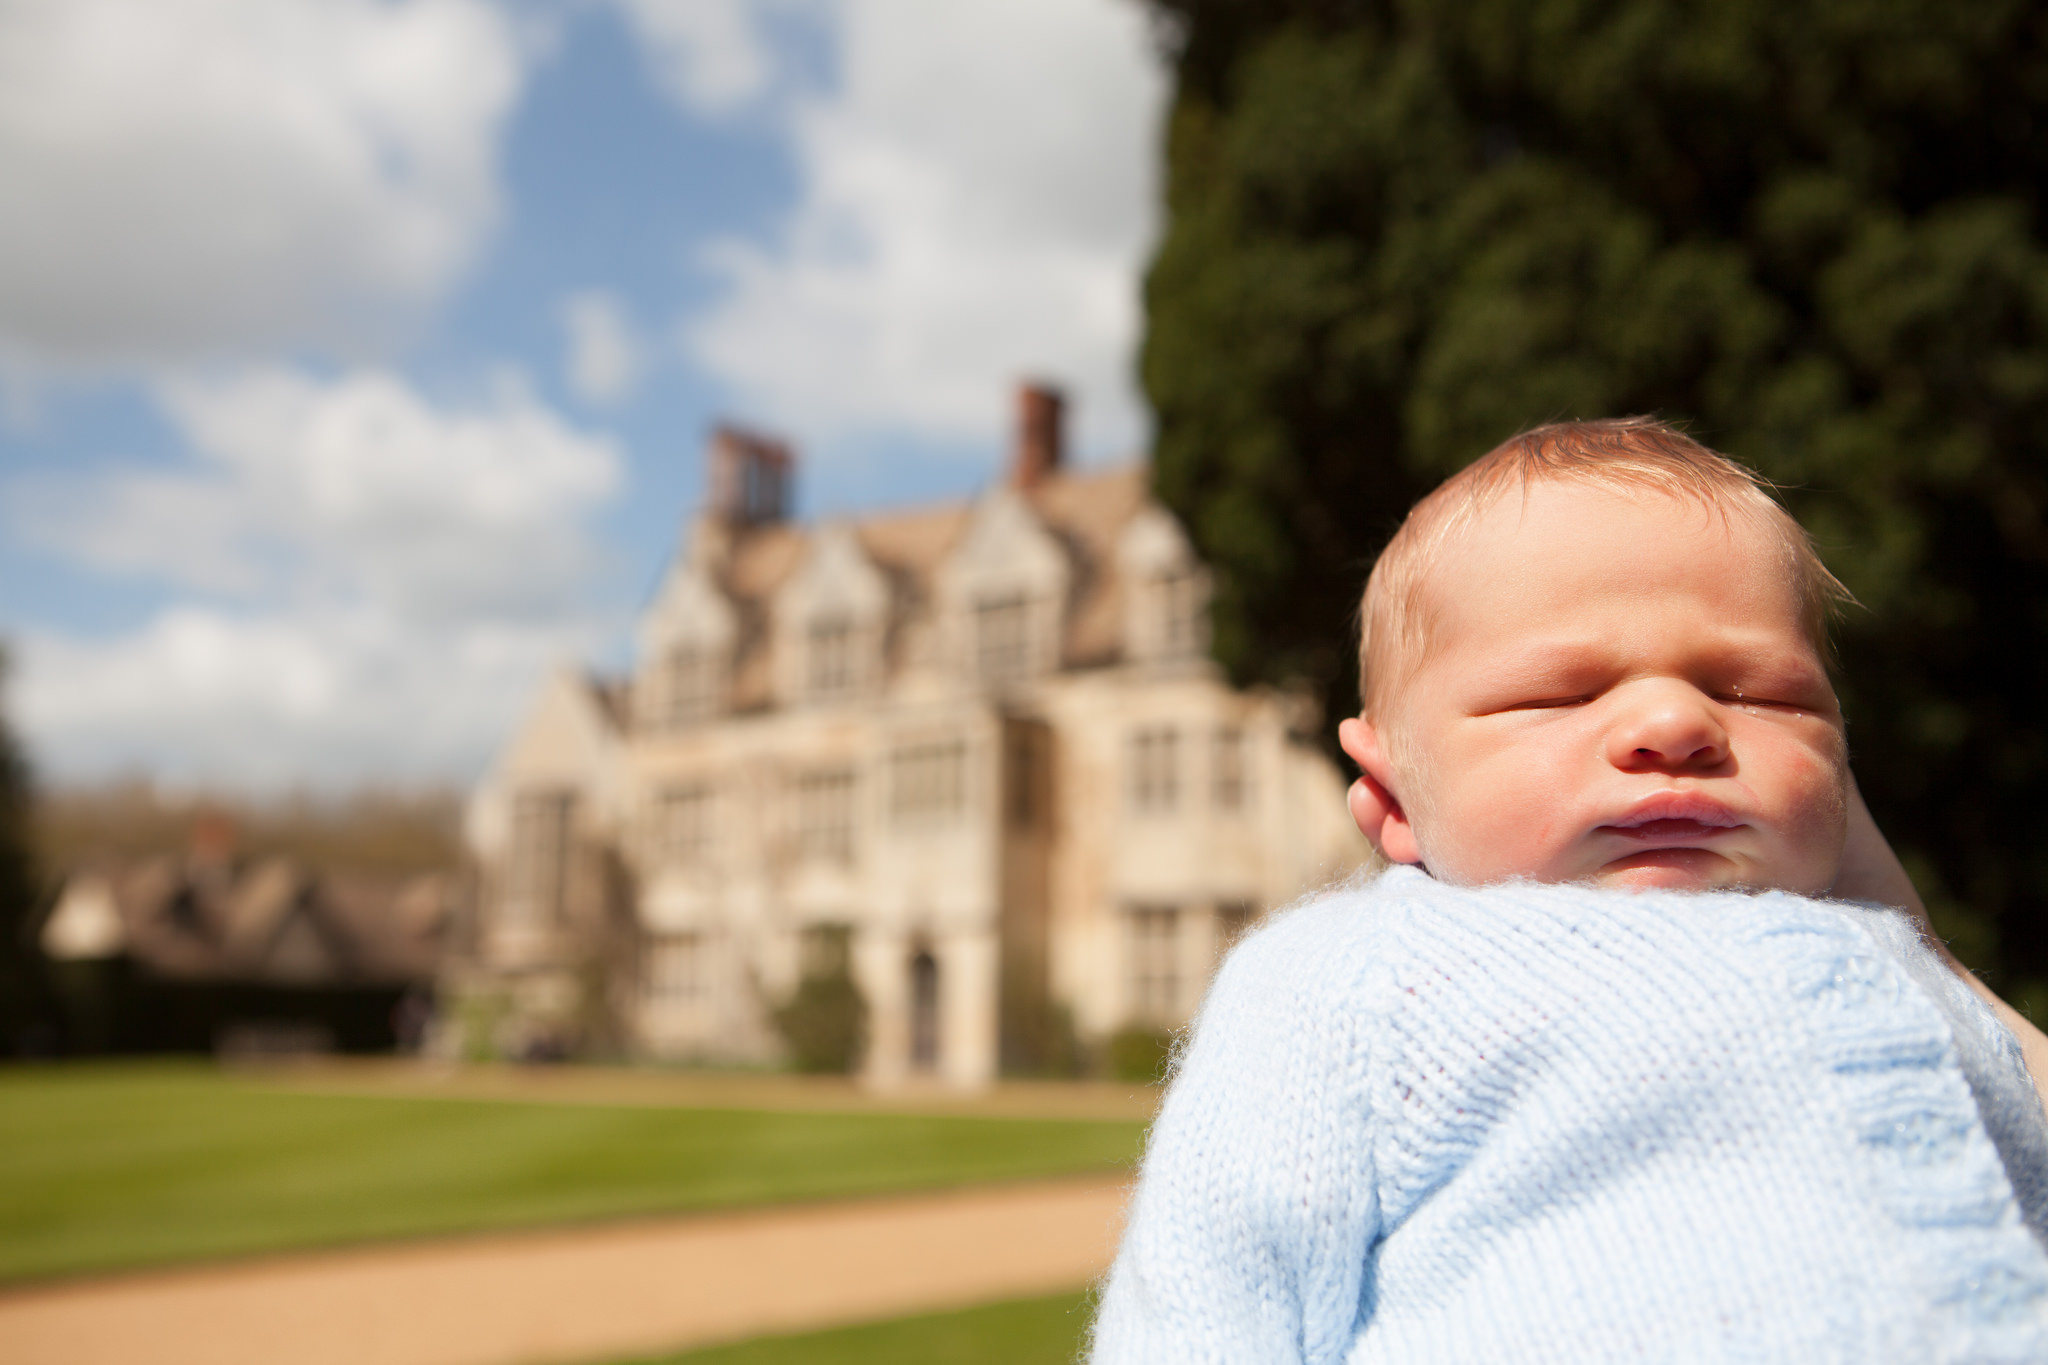 Freddie not appreciating Anglesey Abbey